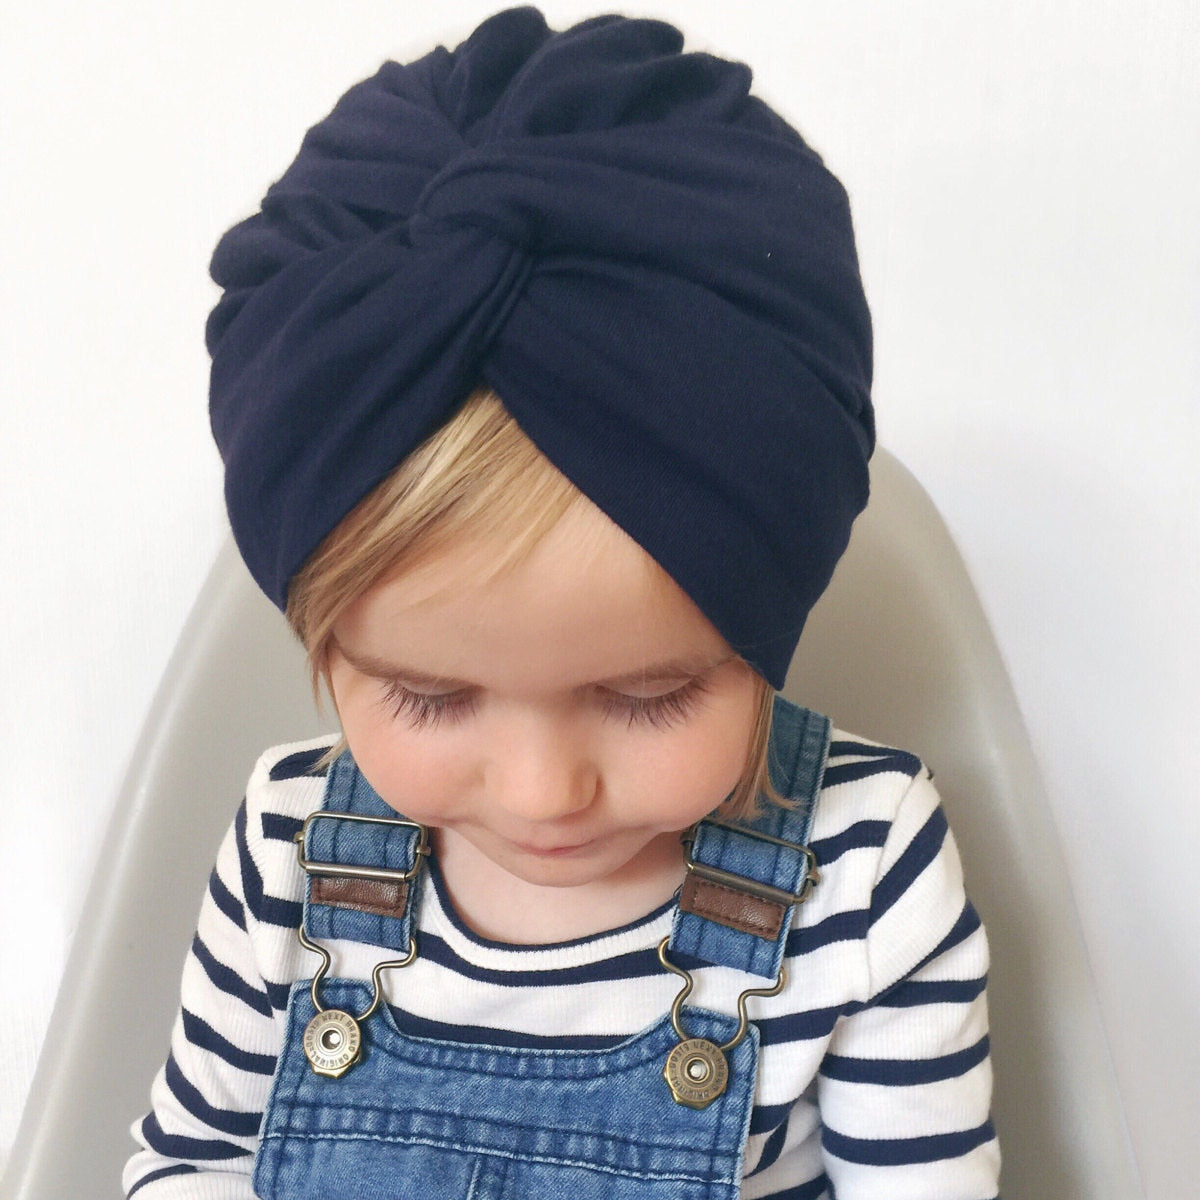 New European and American Popular Headwear Cotton Children's Cross Indian Hat Tam-O'-Shanter Twist Hat Baby Sleeve Cap baby hat